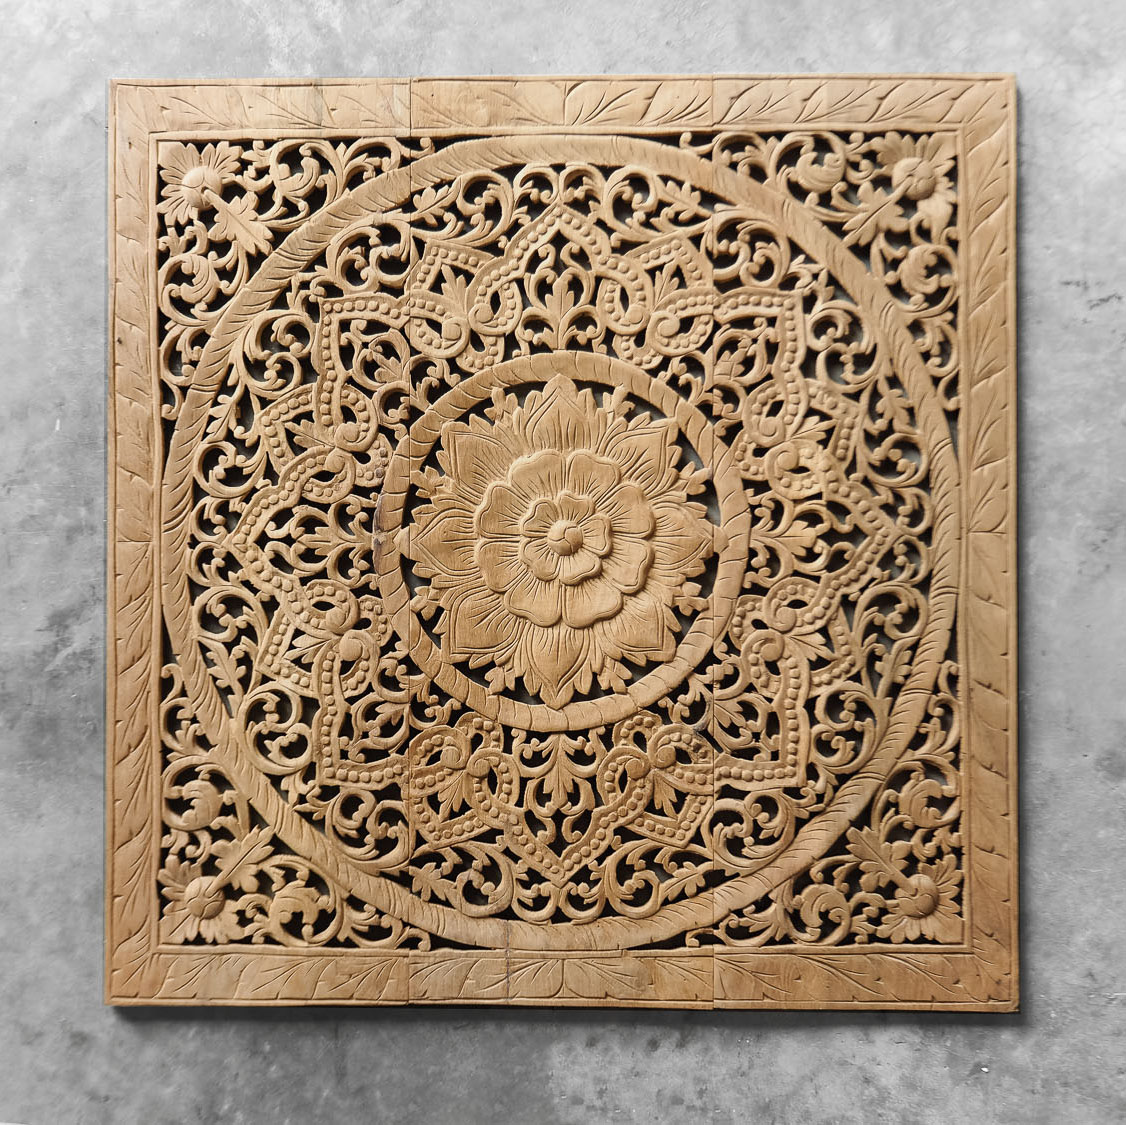 Carved Wood Wall Hanging Buy Antique Lotus Wood Carving Wall Art Hanging Online